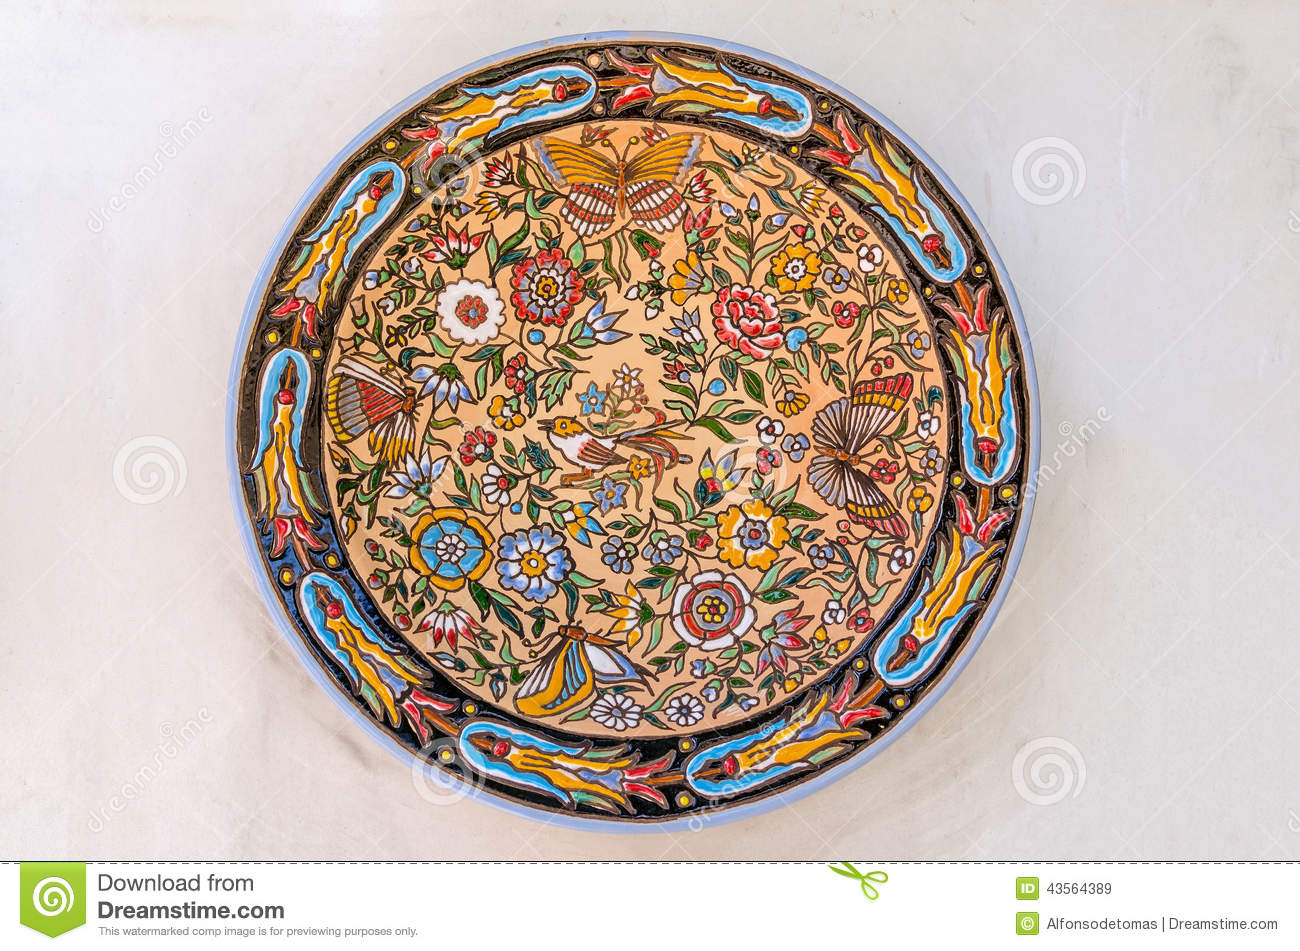 Decorative plate stock illustration image 43564389 - Decoratieve platen ...